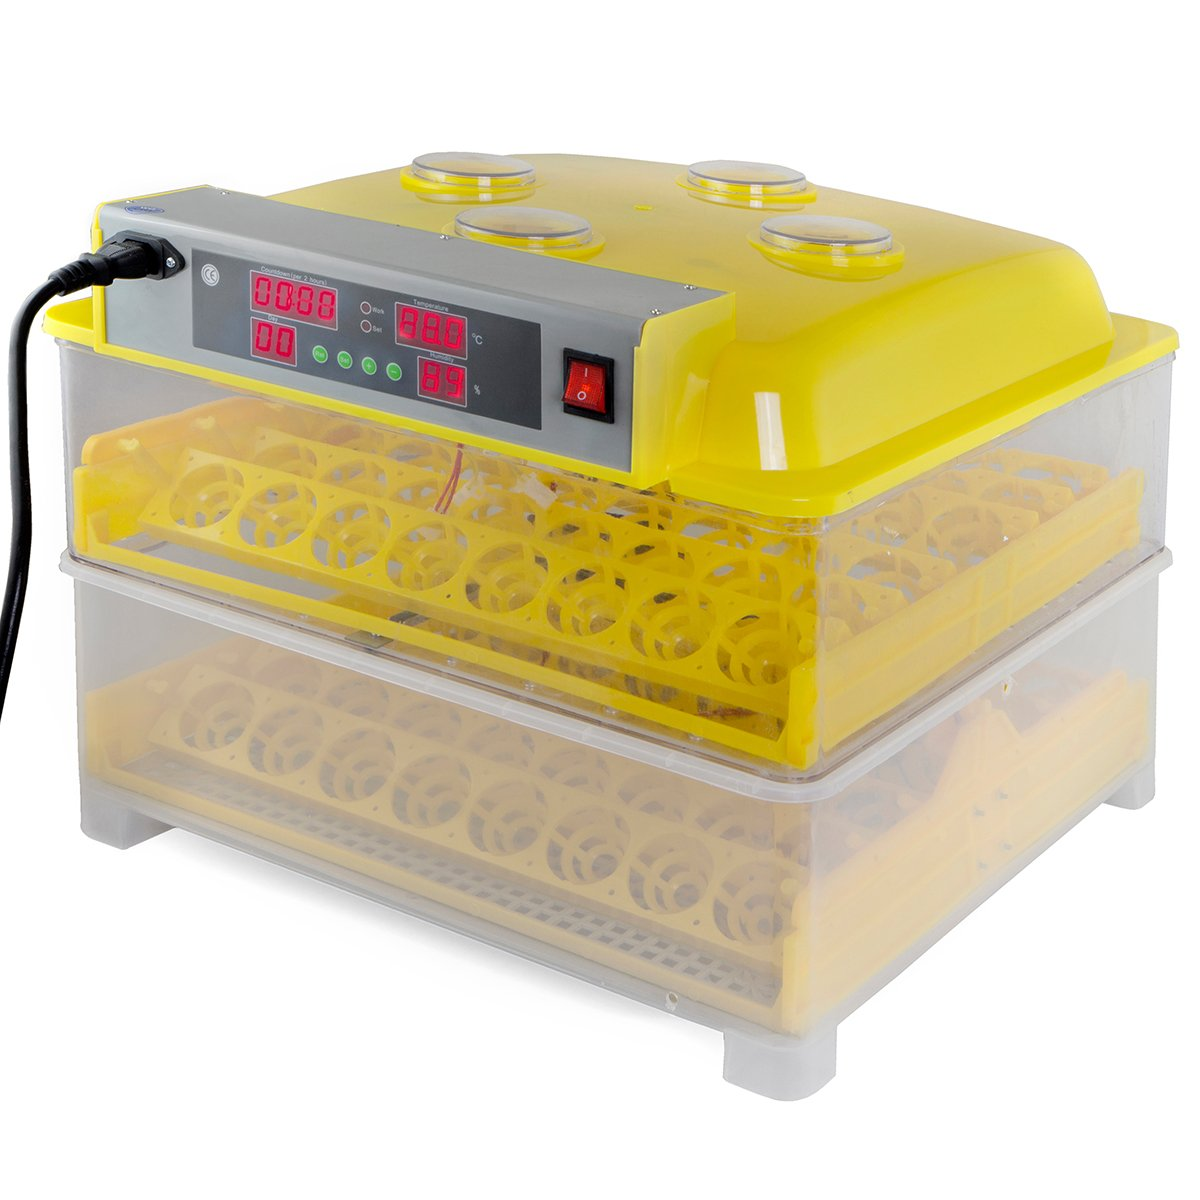 XtremepowerUS Egg Incubator 96 Eggs 2 Layer Digital Control Panel Poultry Hatcher Auto Egg Turner by XtremepowerUS (Image #1)